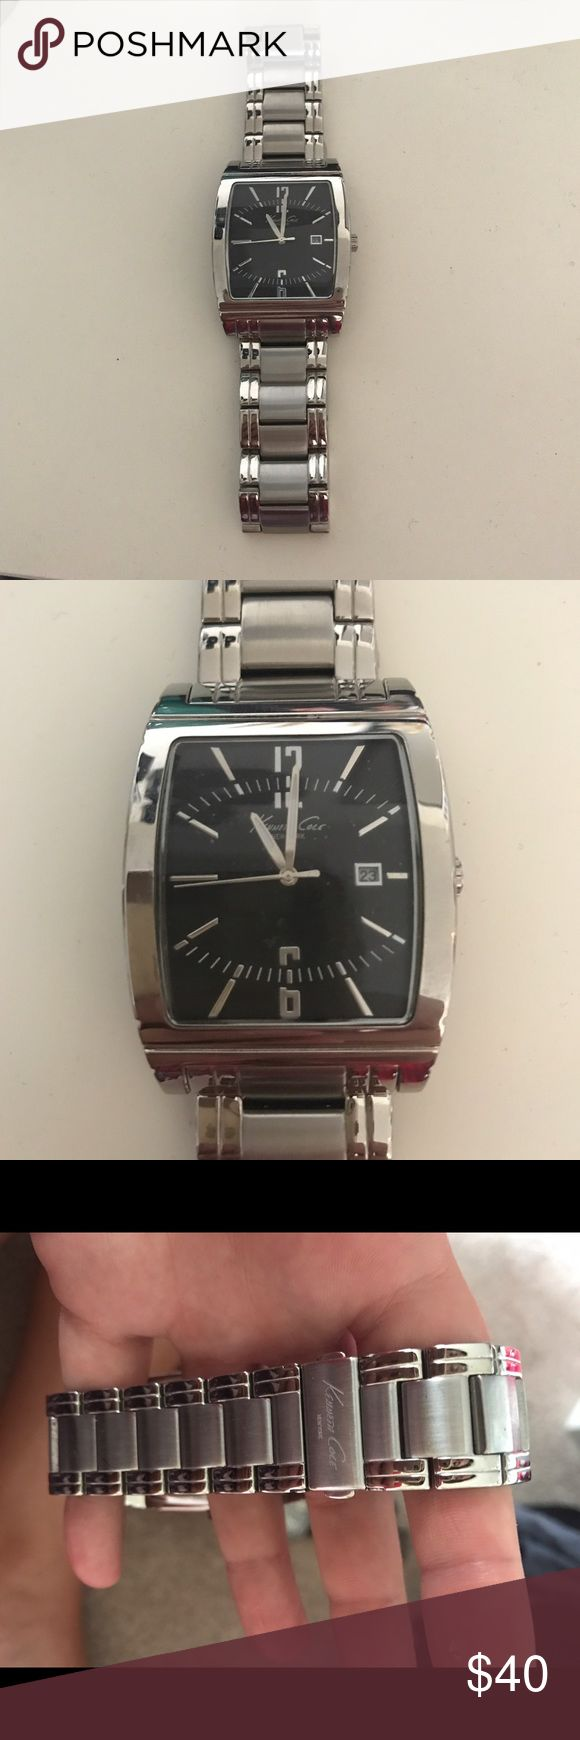 Kenneth Cole Mens Silver Watch Great watch great condition. Kenneth Cole makes this watch Kenneth Cole Accessories Watches